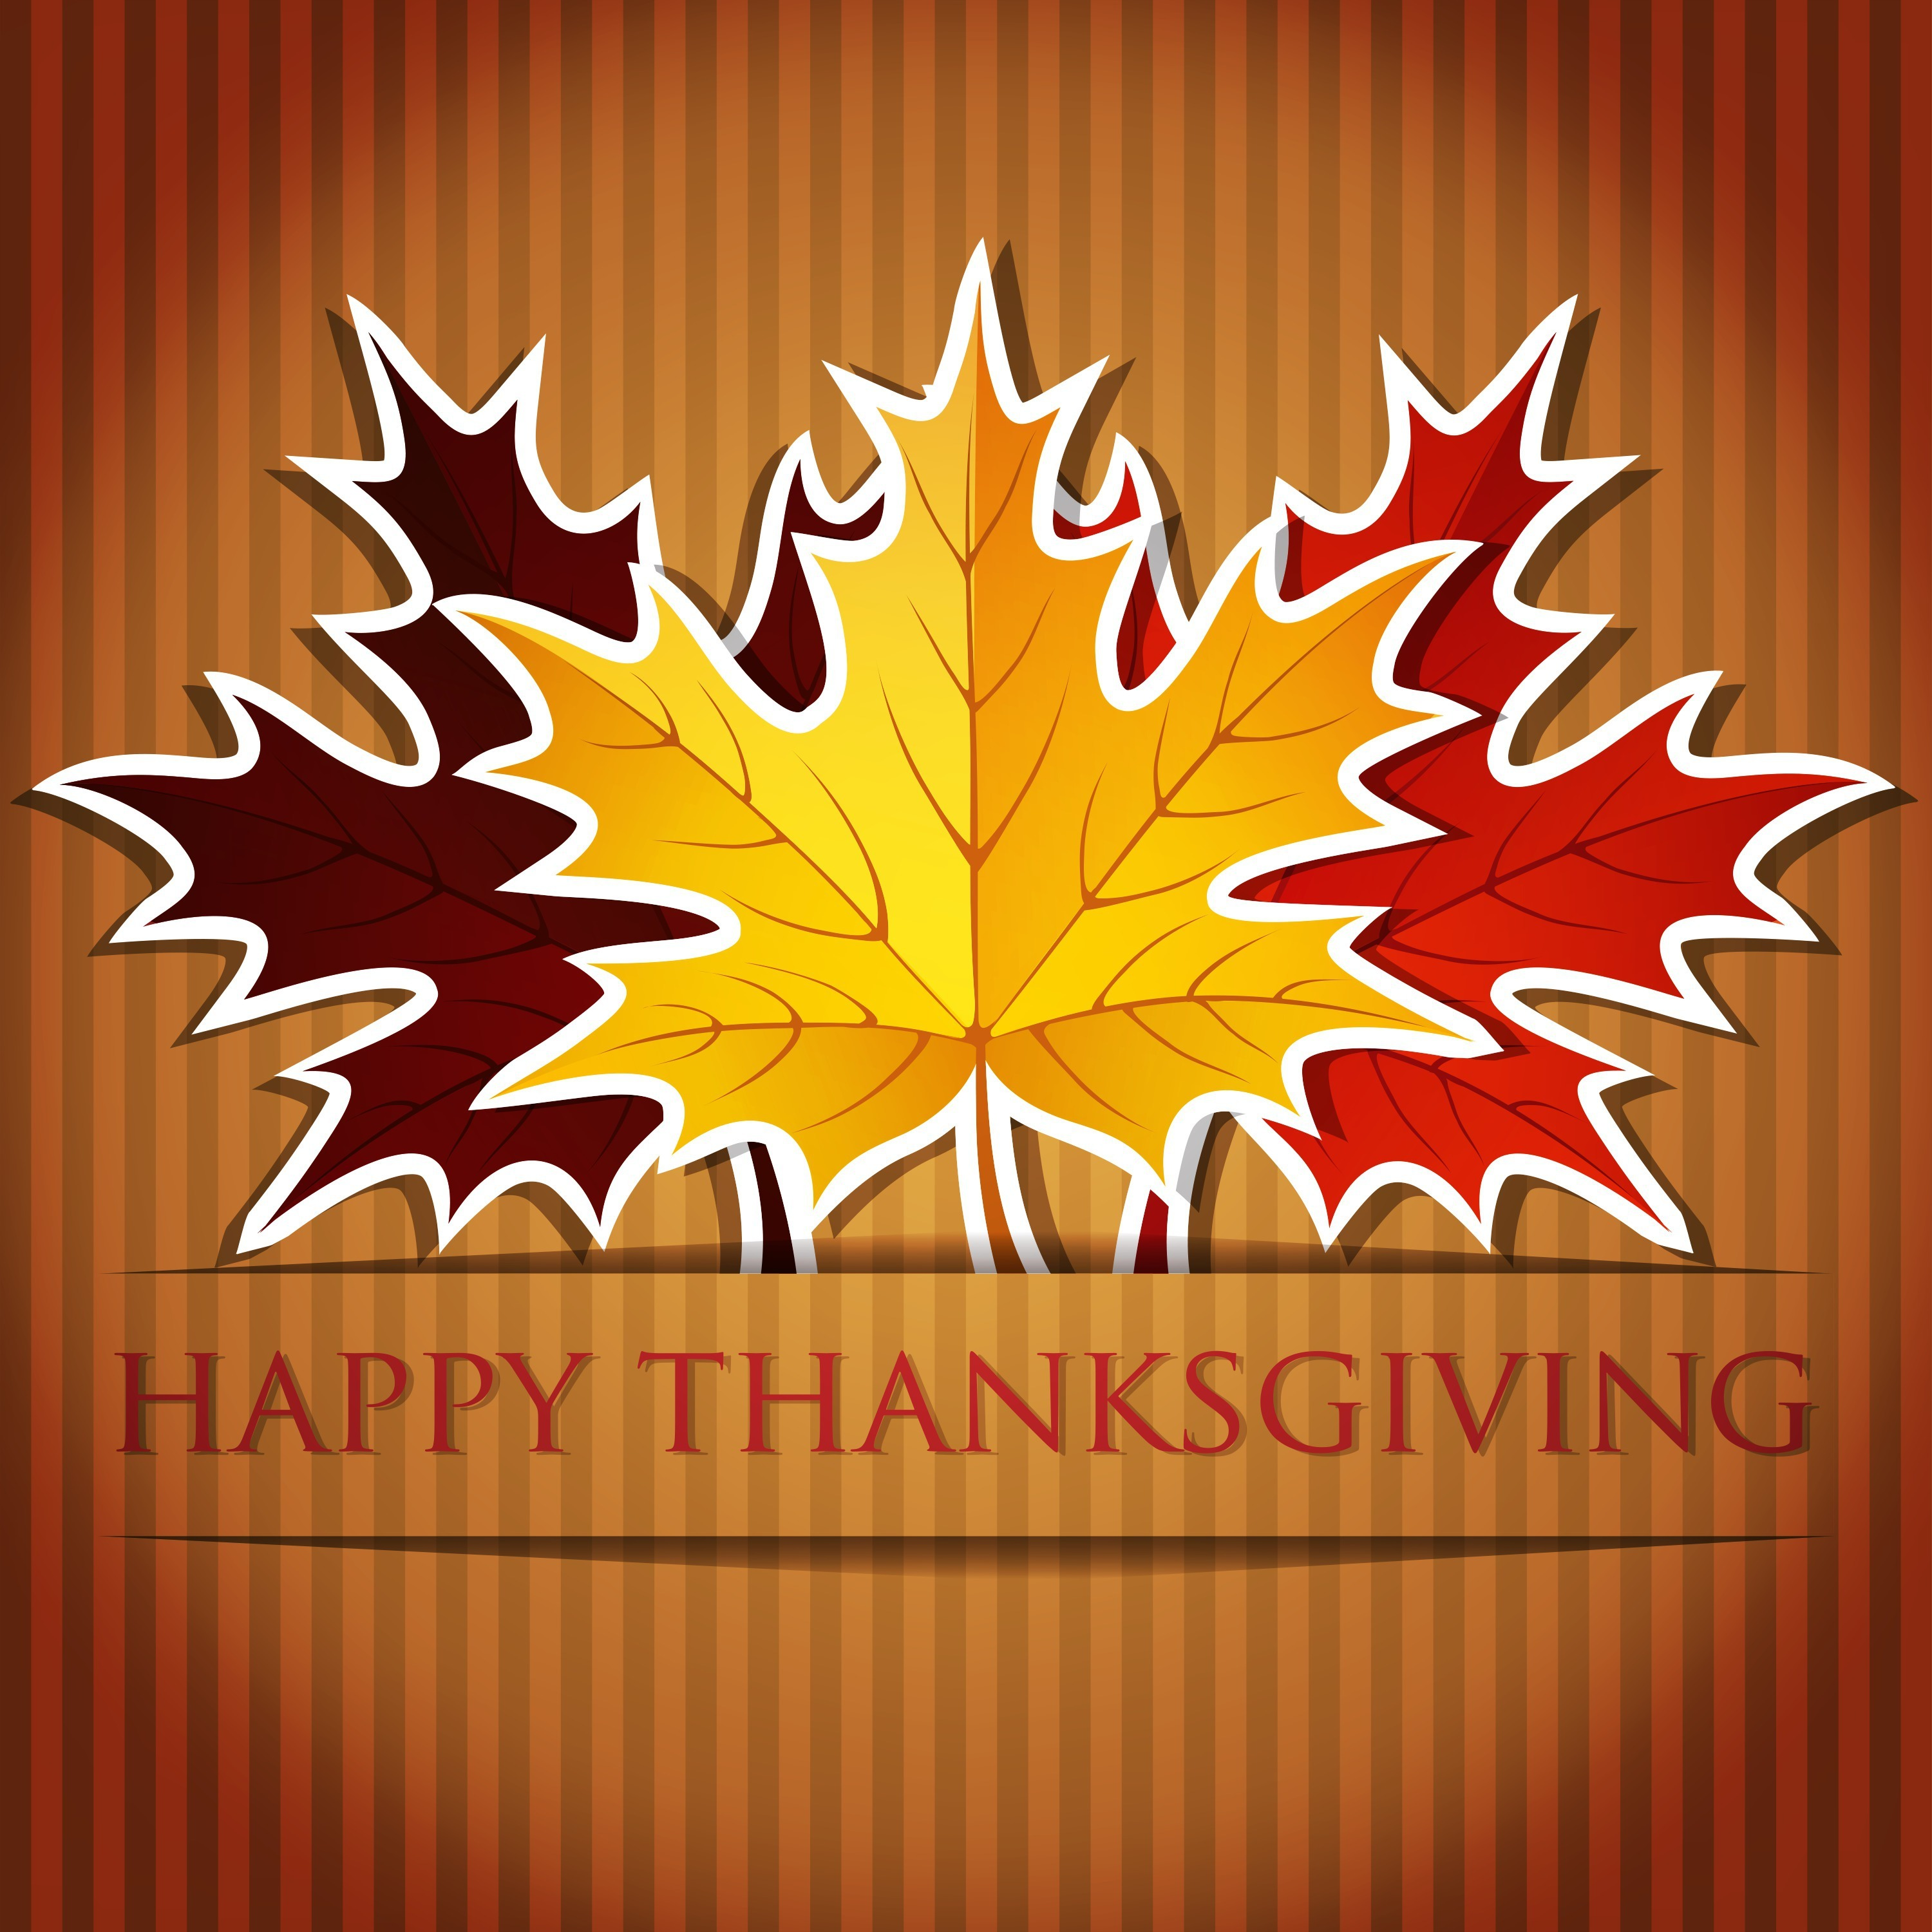 2b167979ea81d5037536_Thanksgiving_Leaves_graphic.jpg